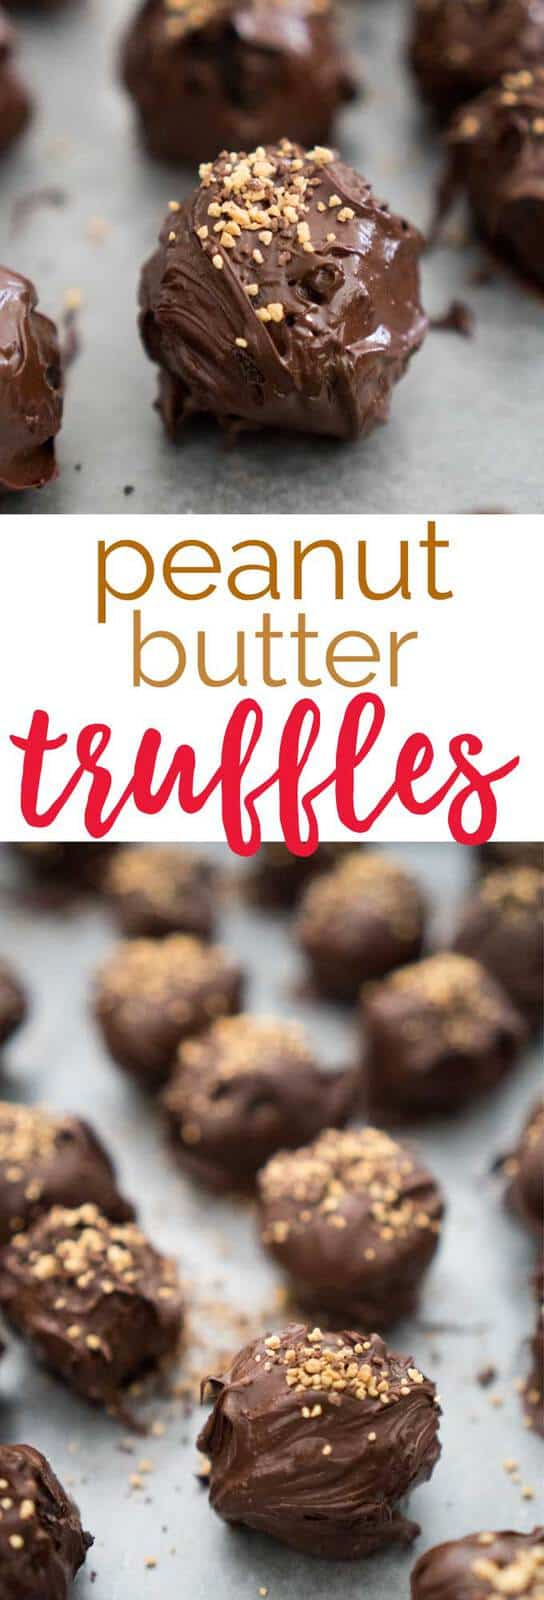 Easy three ingredient Peanut Butter OREO truffles are a no bake dessert that even the kids can make! Perfect for holiday gifting. #recipes #chocolate #dessert #oreo